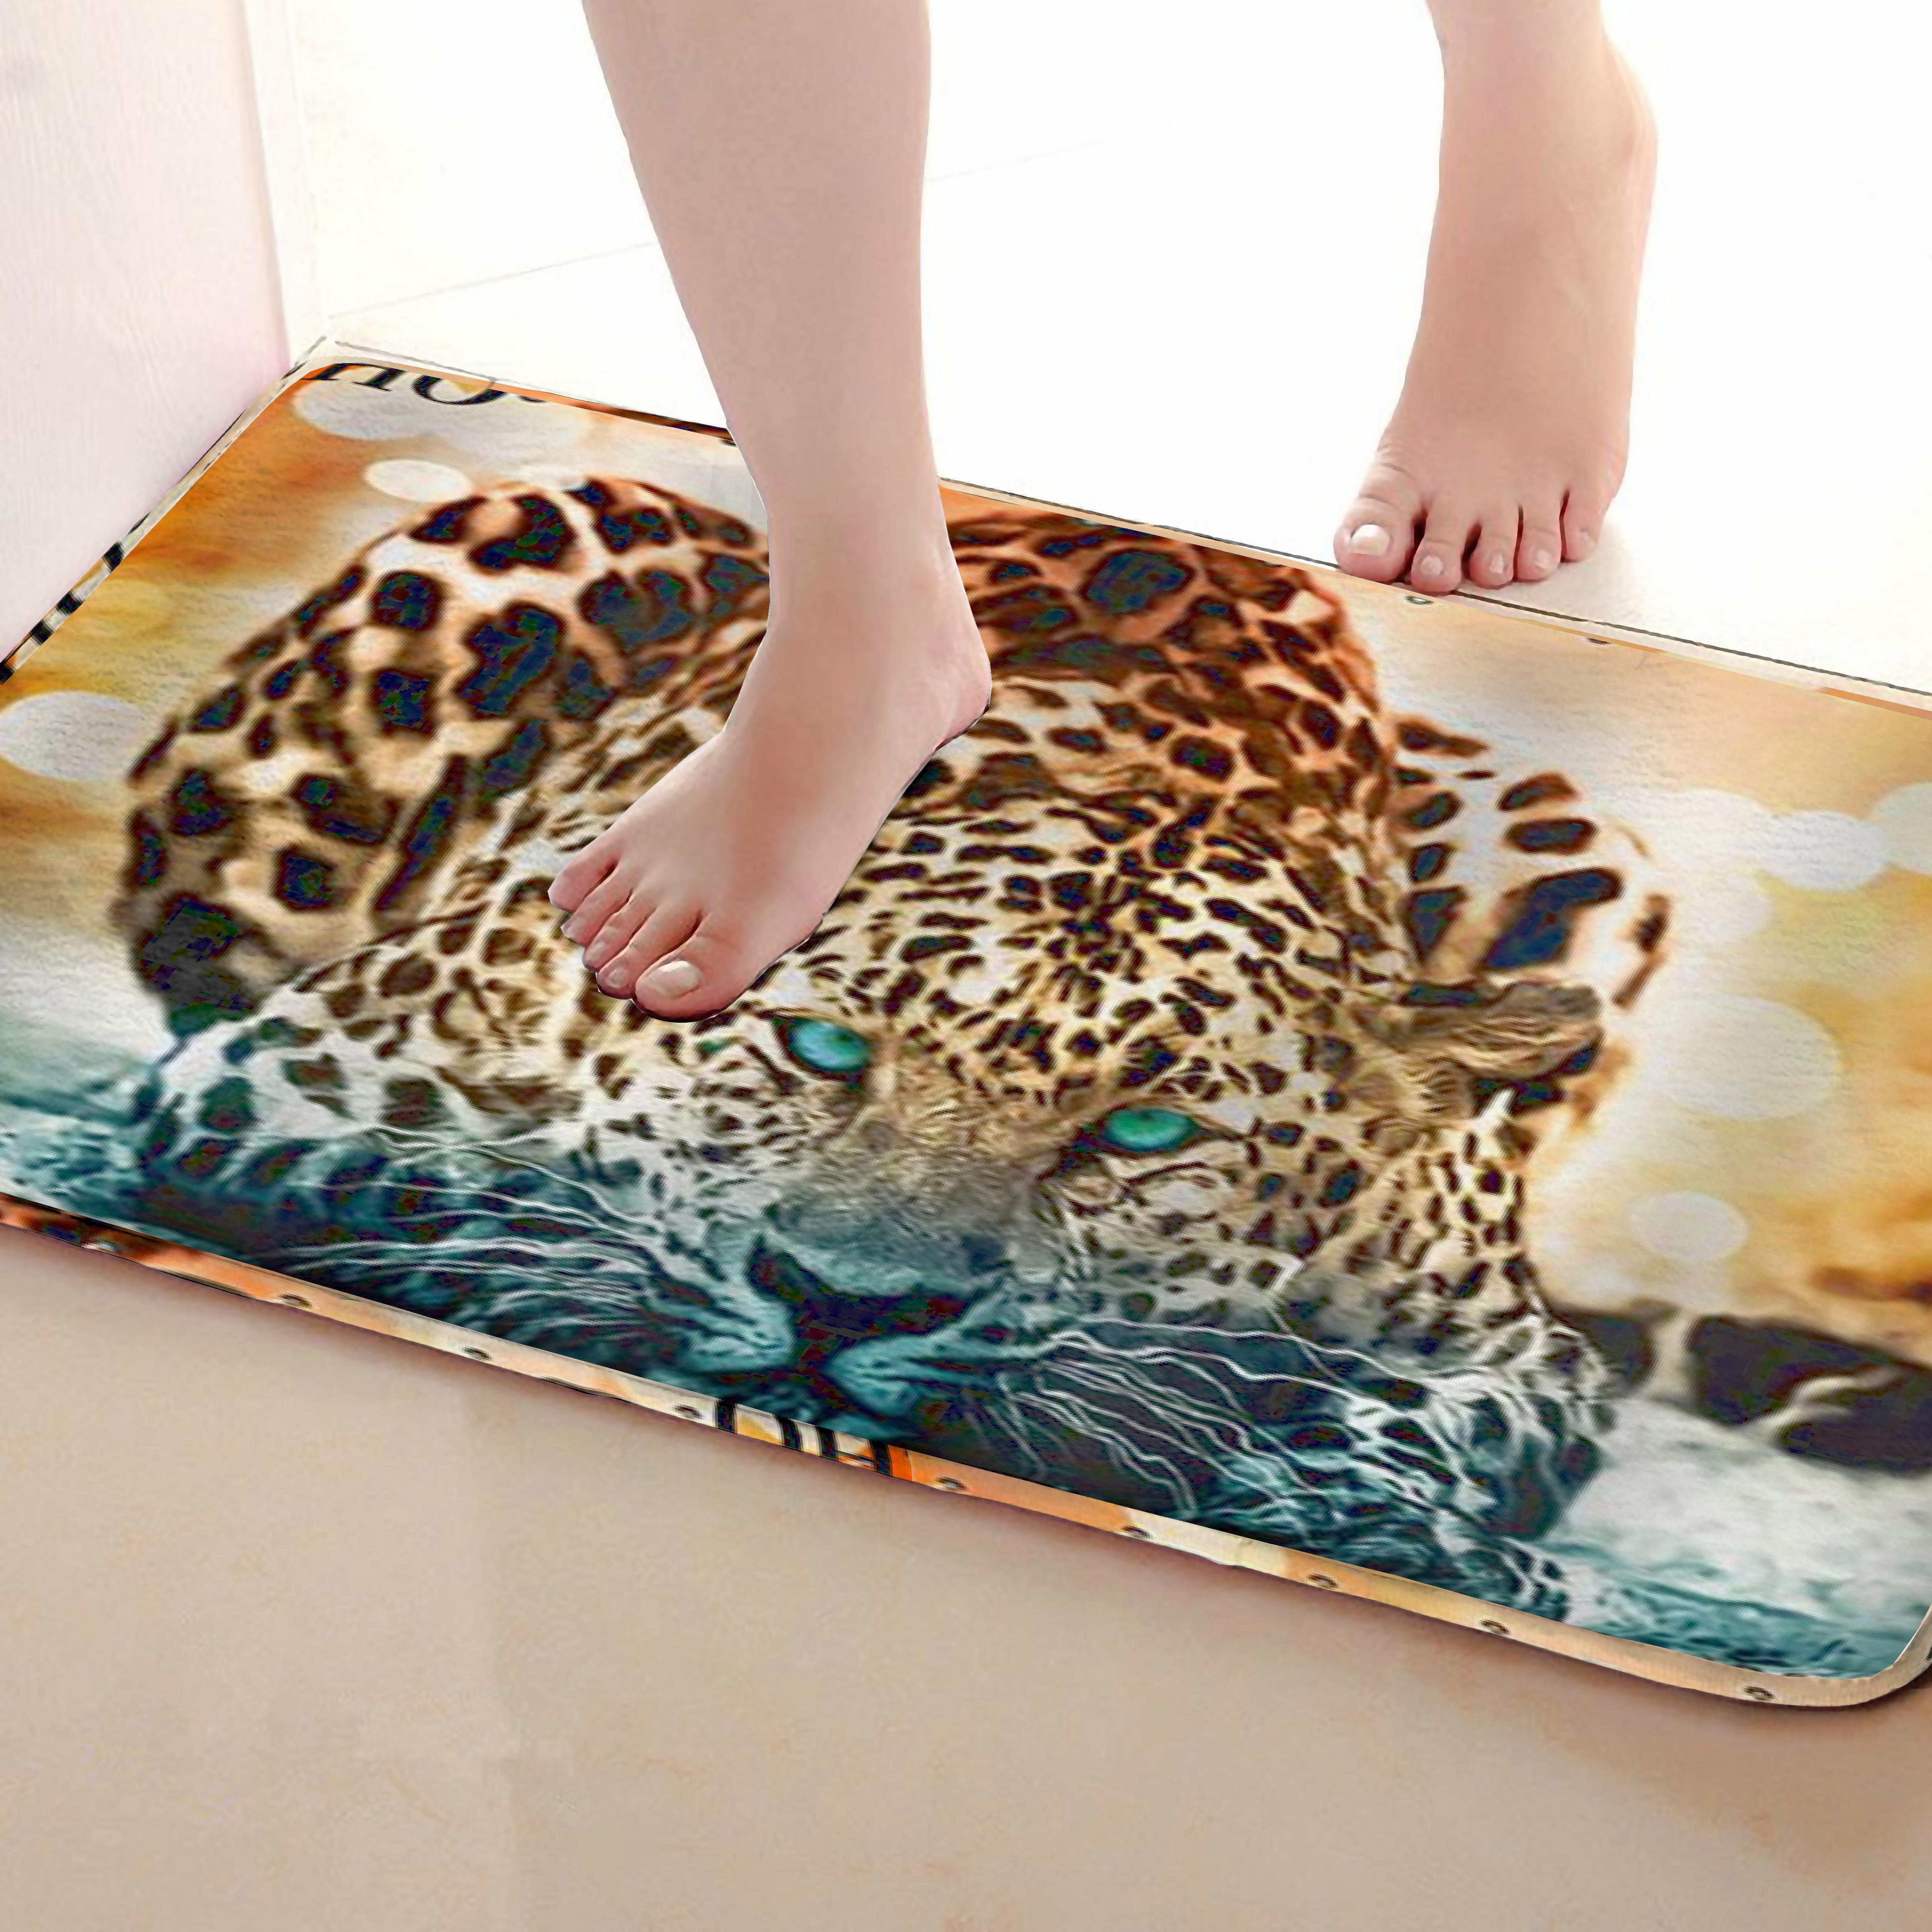 Leopard Style Bathroom Mat,Funny Anti Skid Bath Mat,Shower Curtains Accessories,Matching Your Shower Curtain